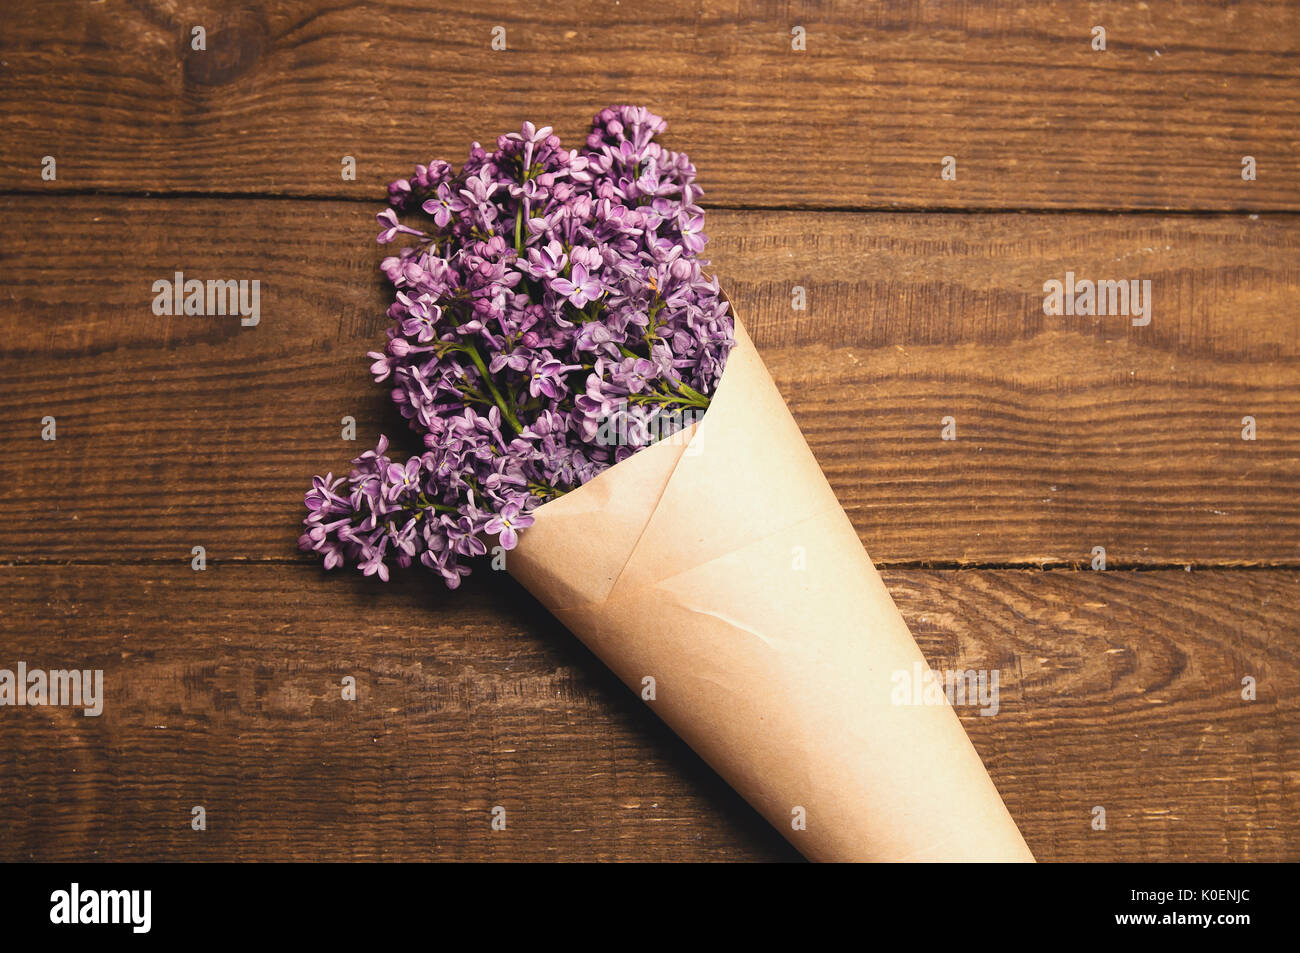 Bouquet flowers wrapped on paper stock photos bouquet flowers bouquet of lilacs on a wooden table wrapped in kraft paper stock image mightylinksfo